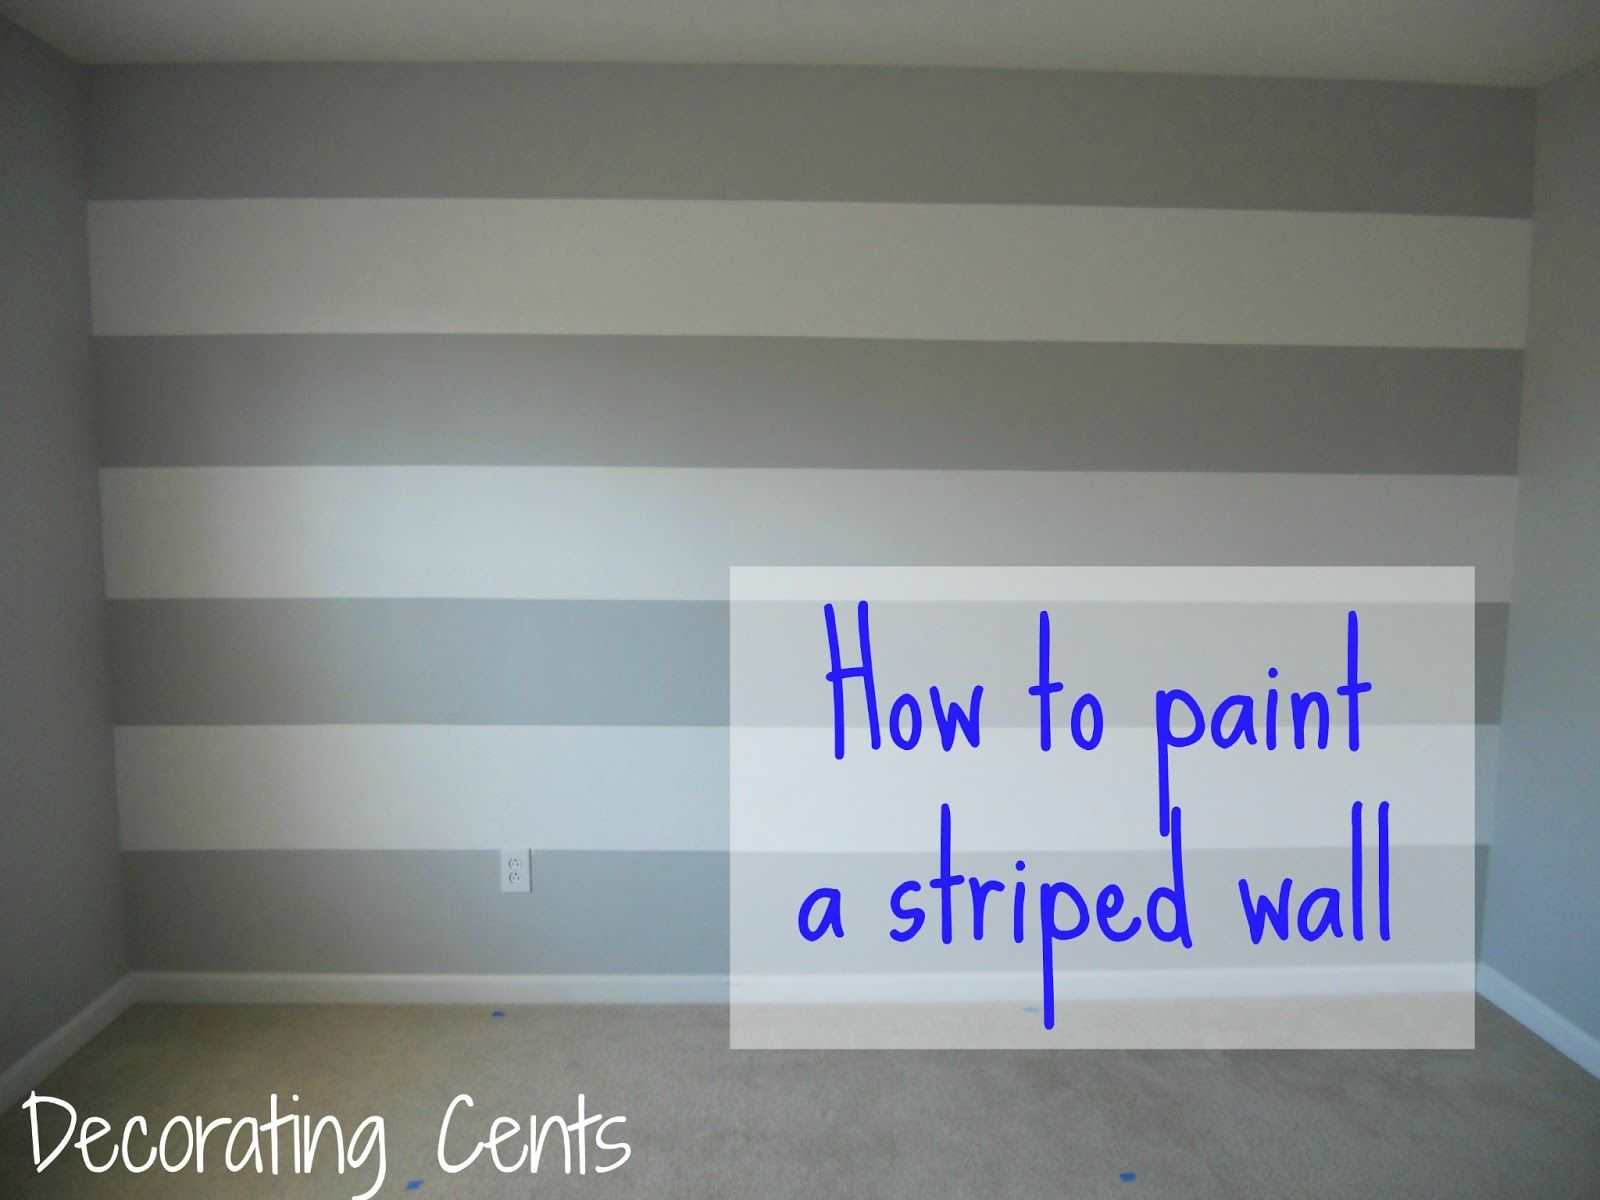 Decorating Cents Painting A Striped Wall